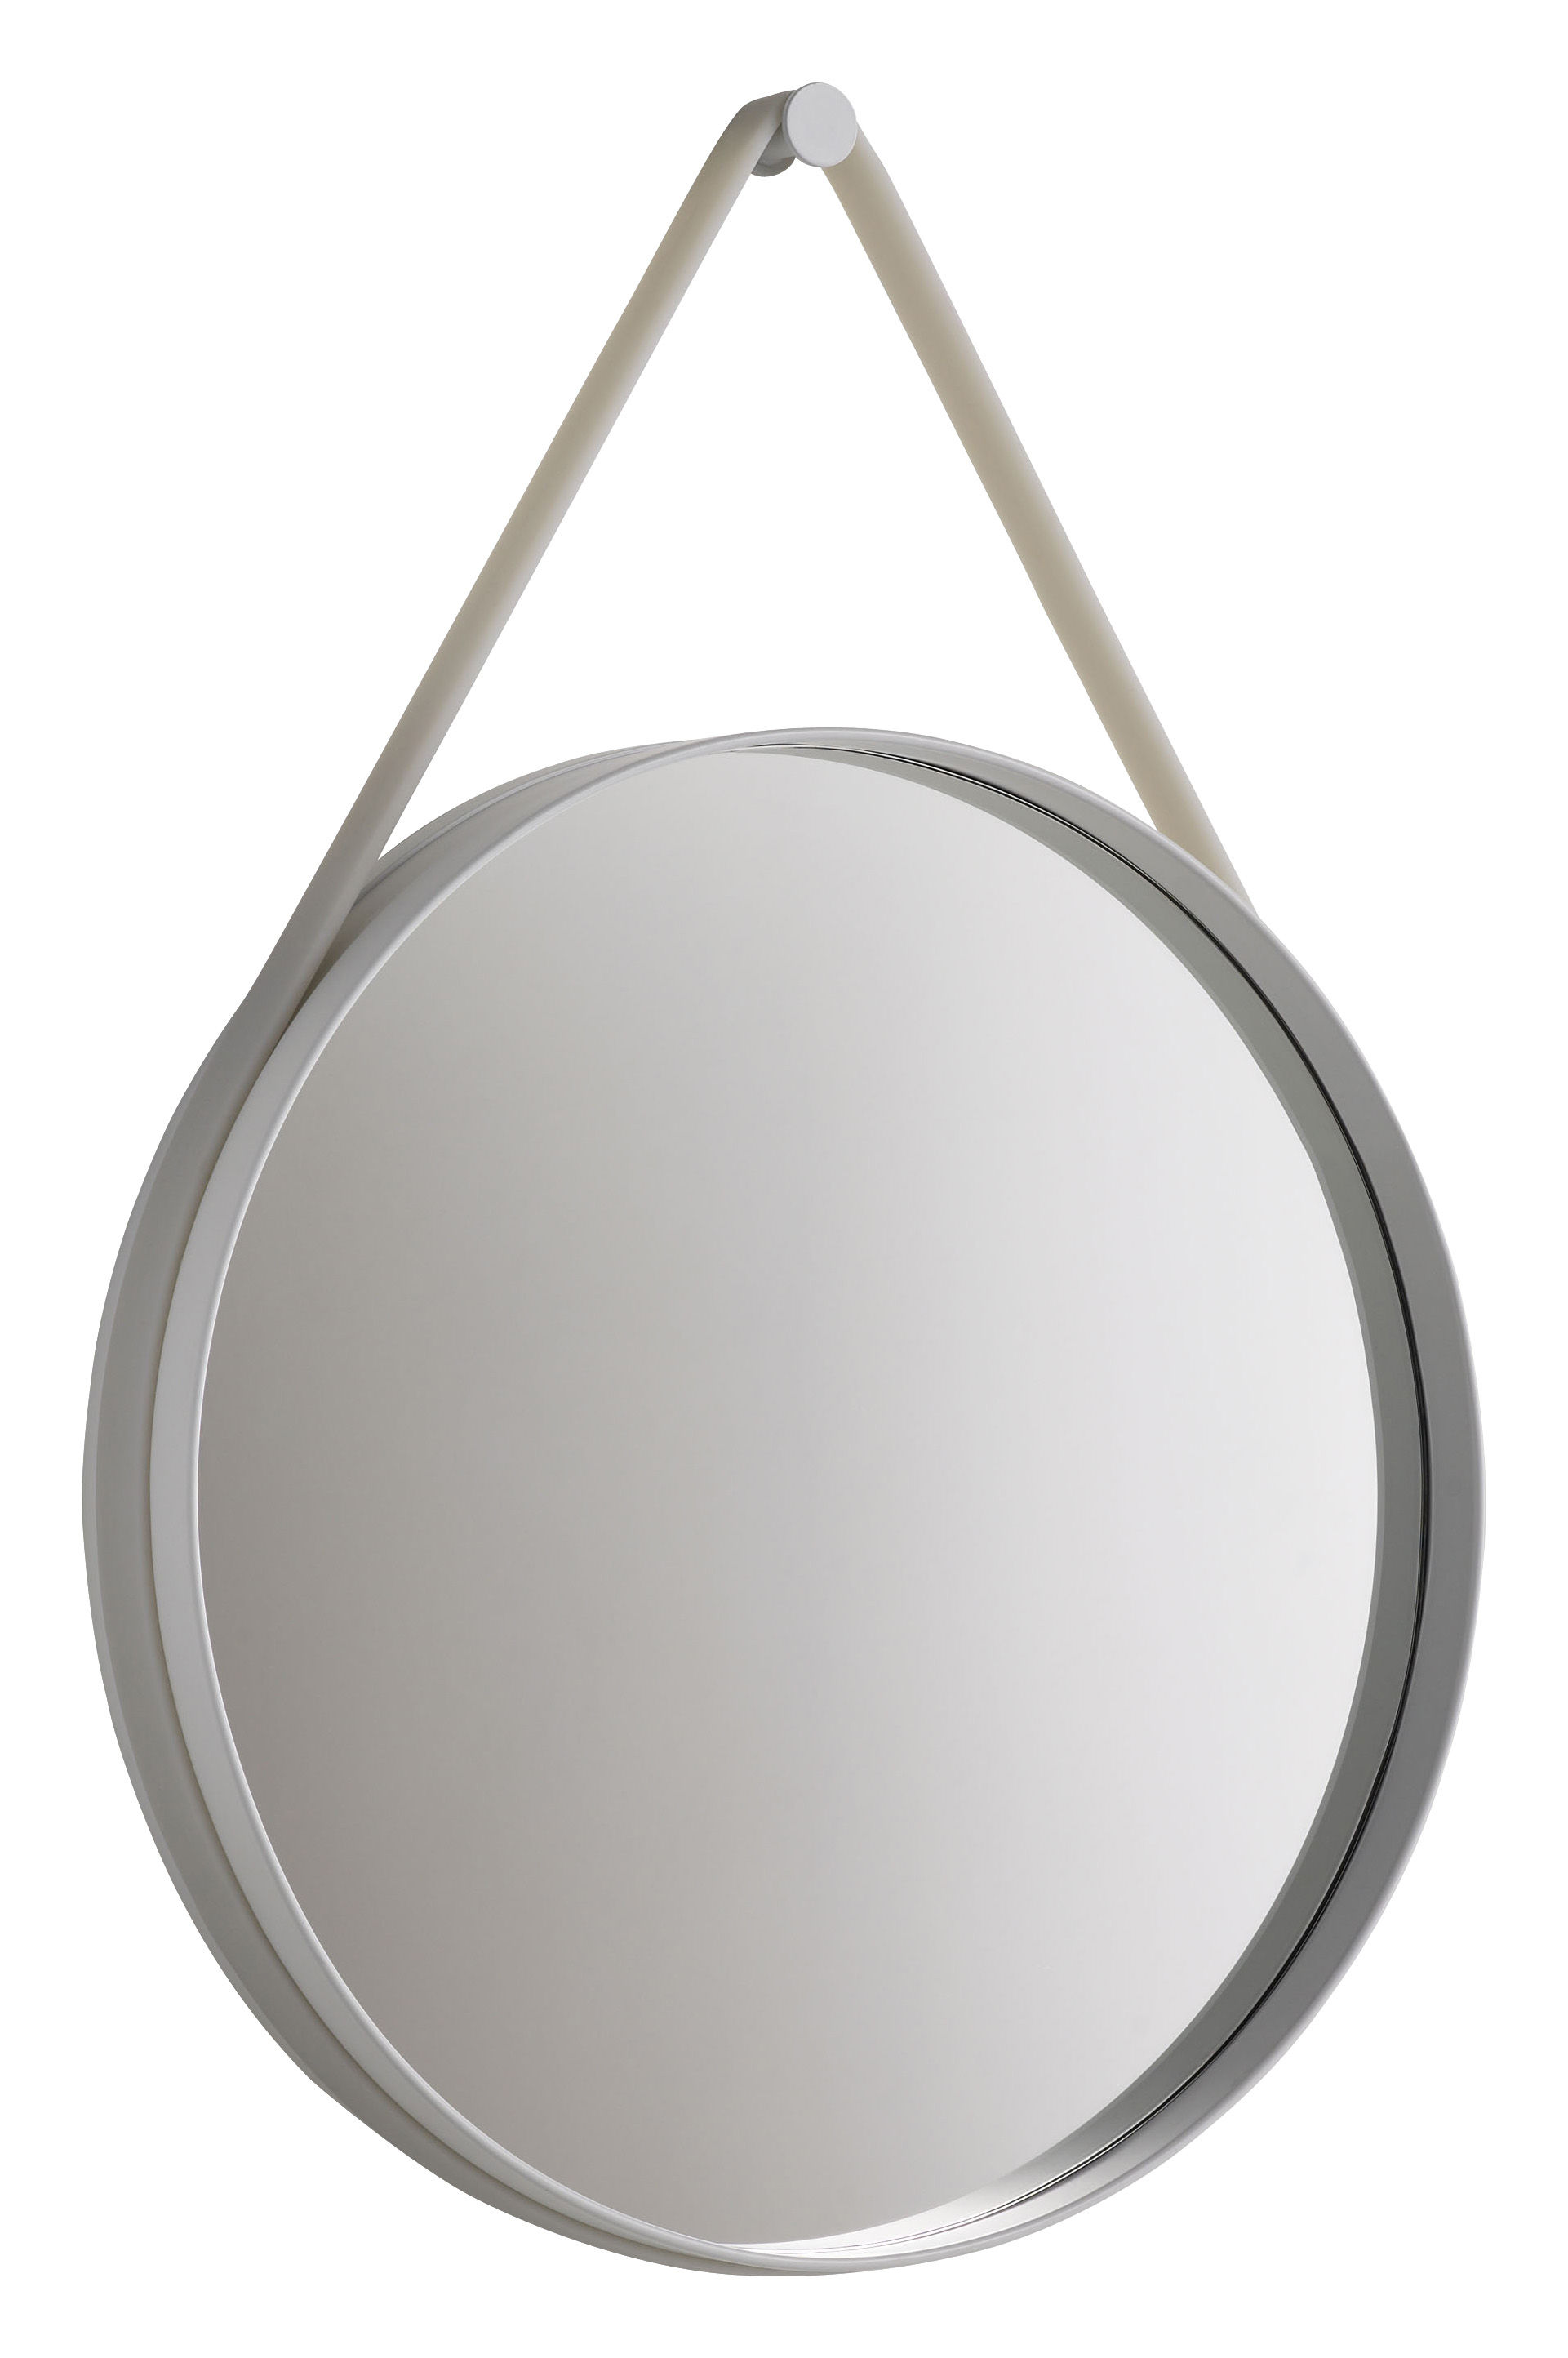 Furniture - Mirrors - Strap Mirror - Ø 70 cm by Hay - Ø 70 cm - Light grey - Lacquered steel, Silicone